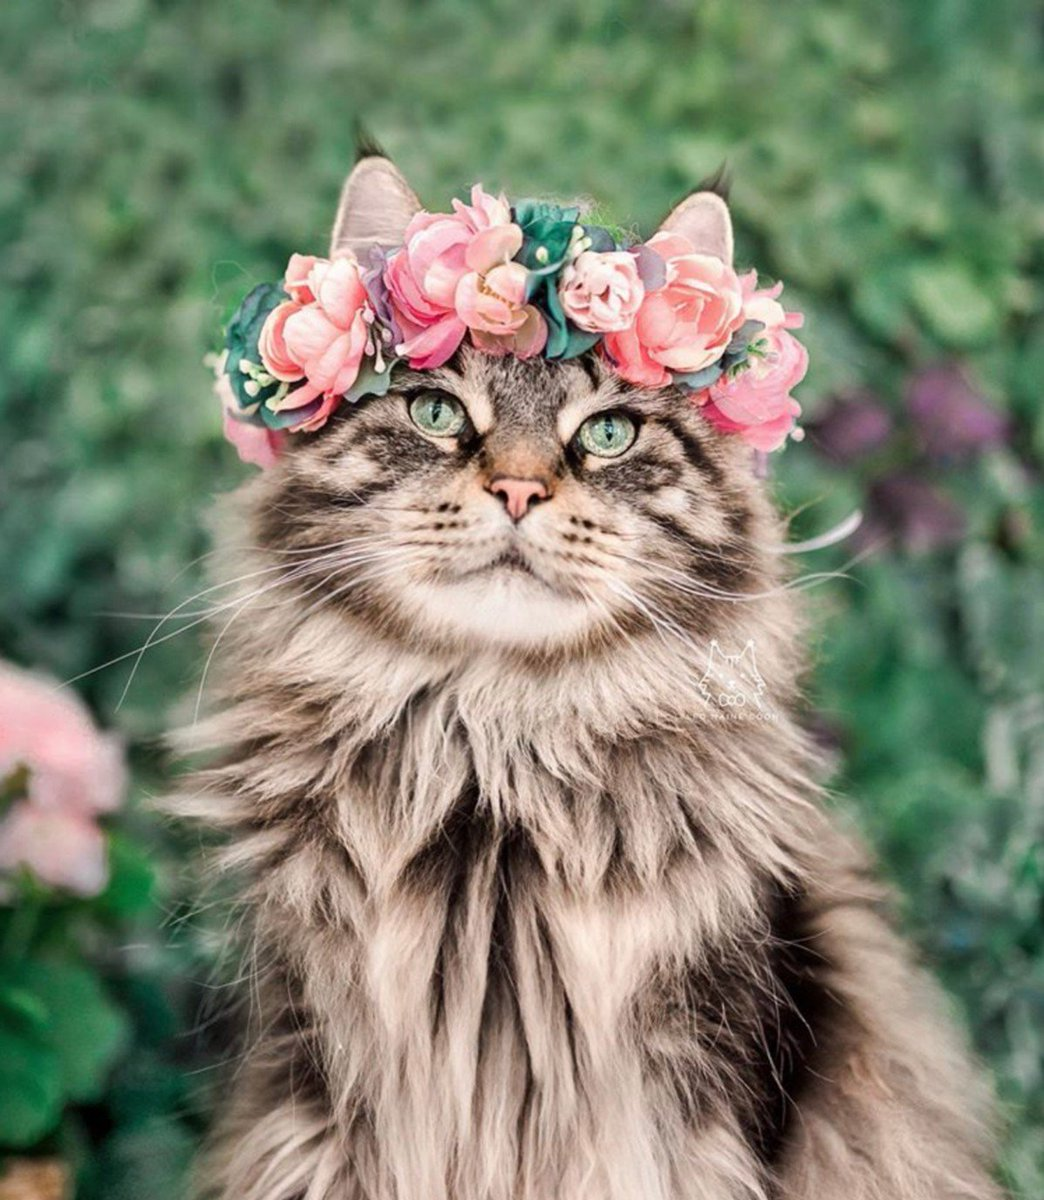 A purr-fect bridesmaid 😍❤️🐾  📸: @leo.mainecoon     #Rosewoodpet #Rosewoodcat #beautiful #cat #catsofinstagram #Flowergirl #catsatweddings #mainecoon #mainecooncats